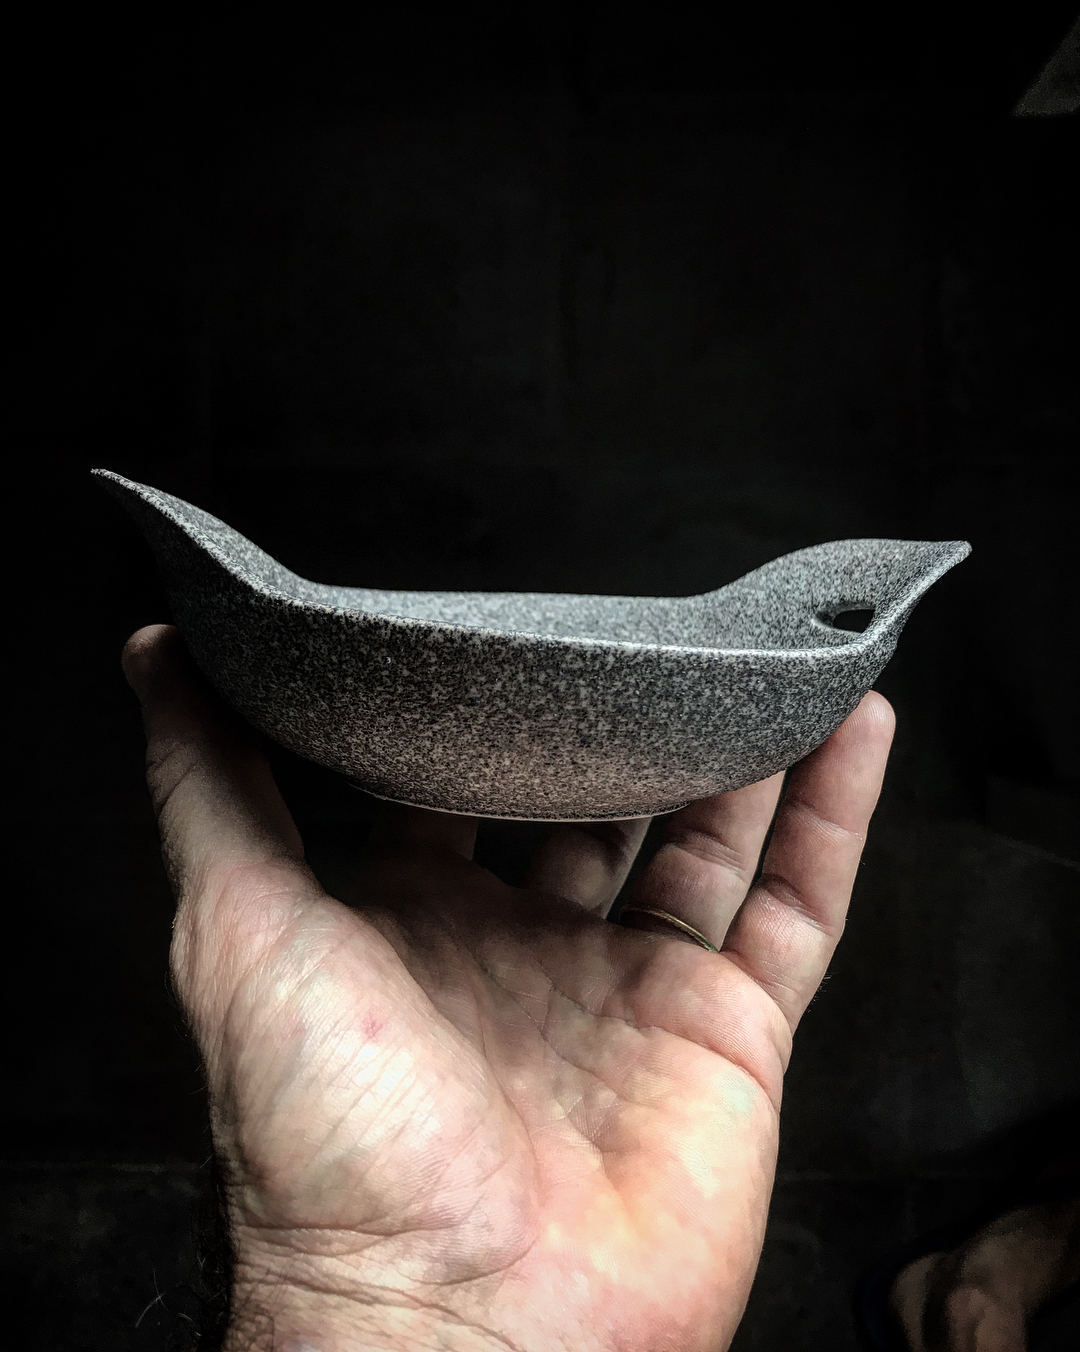 Meanwhile the mighty Agung is erupting Im going to post some LAVA-related ceramics ... .These little wok pans are completely unglazed and the clay body is a mix of black volcanic sand and porcelain.The dry and rough surface looks land feels like a piece of stone... instacool